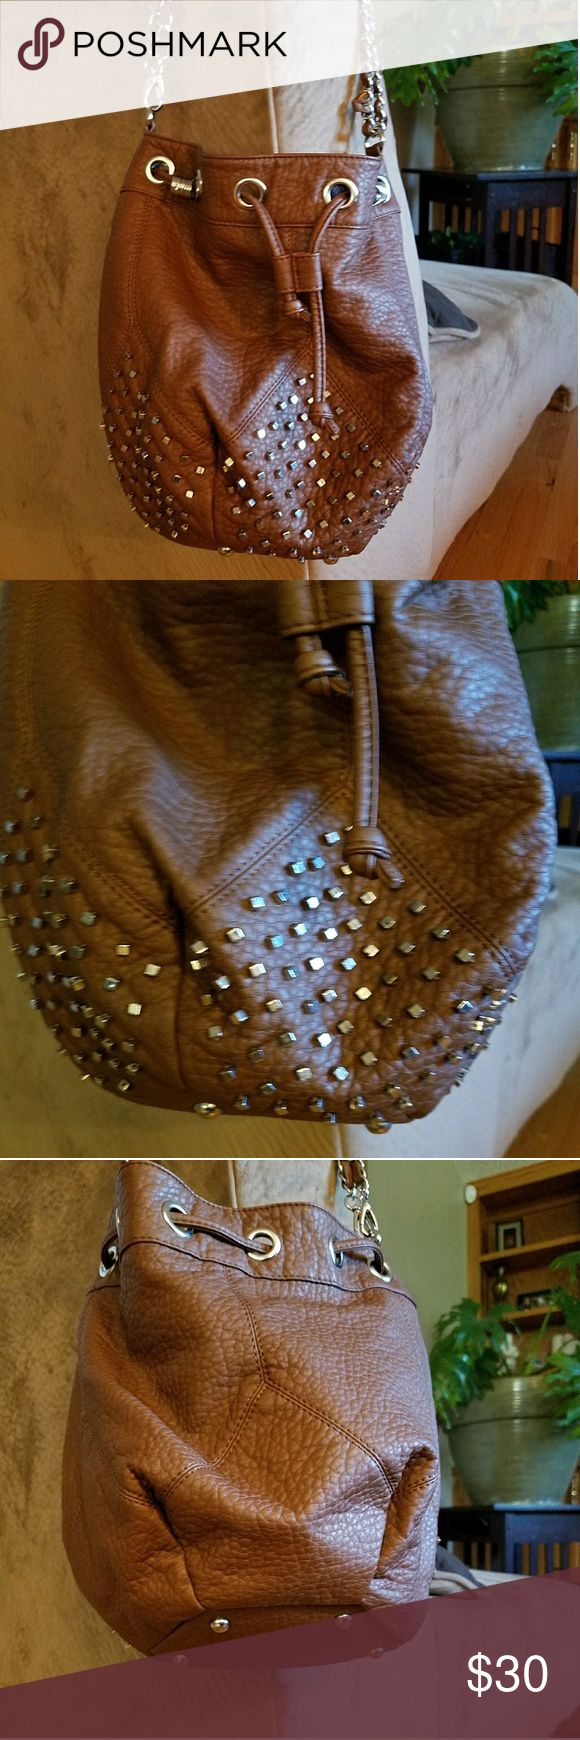 DEENA AND OZZY STUDDED BAG Cute carmel brown, faux leather drawstring bag with silver studs and hardware. Has detachable shoulder strap and a silver chain strap. Never used, NWOT Deena & Oozzy Bags Crossbody Bags